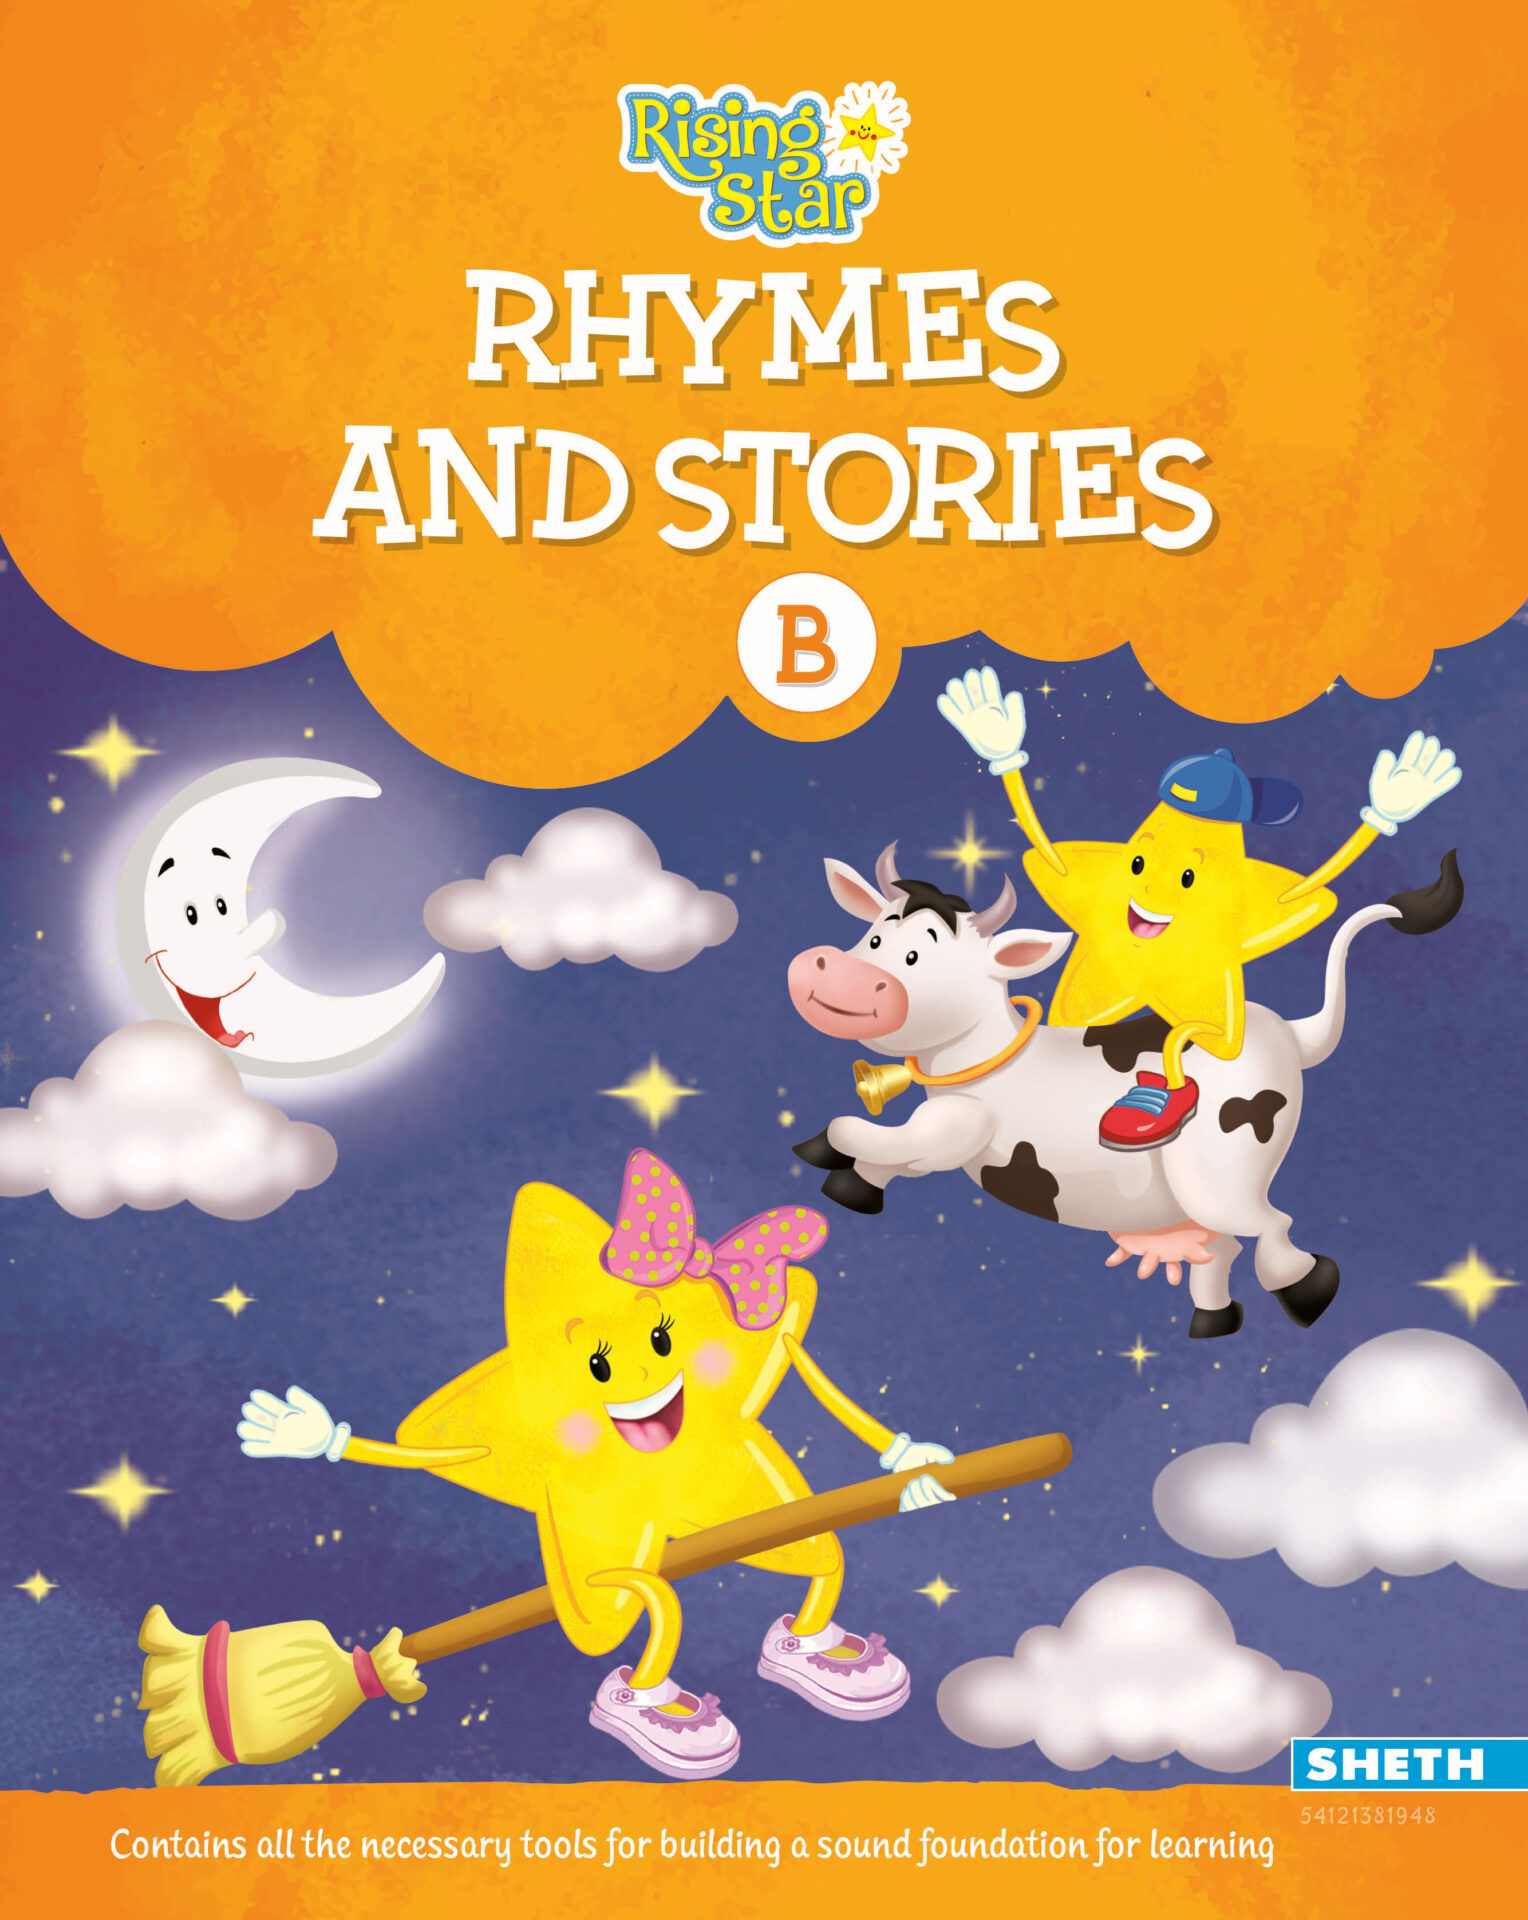 Rising Star Rhymes and Stories B 1 1